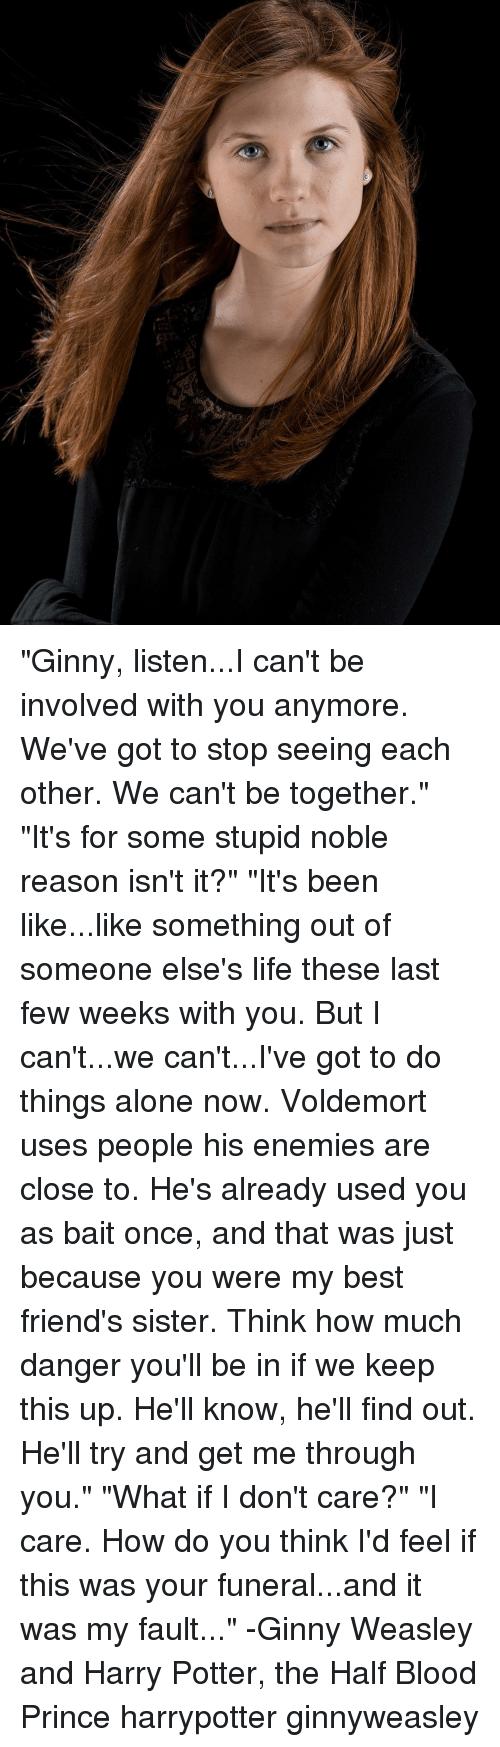 """harried: """"Ginny, listen...I can't be involved with you anymore. We've got to stop seeing each other. We can't be together."""" """"It's for some stupid noble reason isn't it?"""" """"It's been like...like something out of someone else's life these last few weeks with you. But I can't...we can't...I've got to do things alone now. Voldemort uses people his enemies are close to. He's already used you as bait once, and that was just because you were my best friend's sister. Think how much danger you'll be in if we keep this up. He'll know, he'll find out. He'll try and get me through you."""" """"What if I don't care?"""" """"I care. How do you think I'd feel if this was your funeral...and it was my fault..."""" -Ginny Weasley and Harry Potter, the Half Blood Prince harrypotter ginnyweasley"""